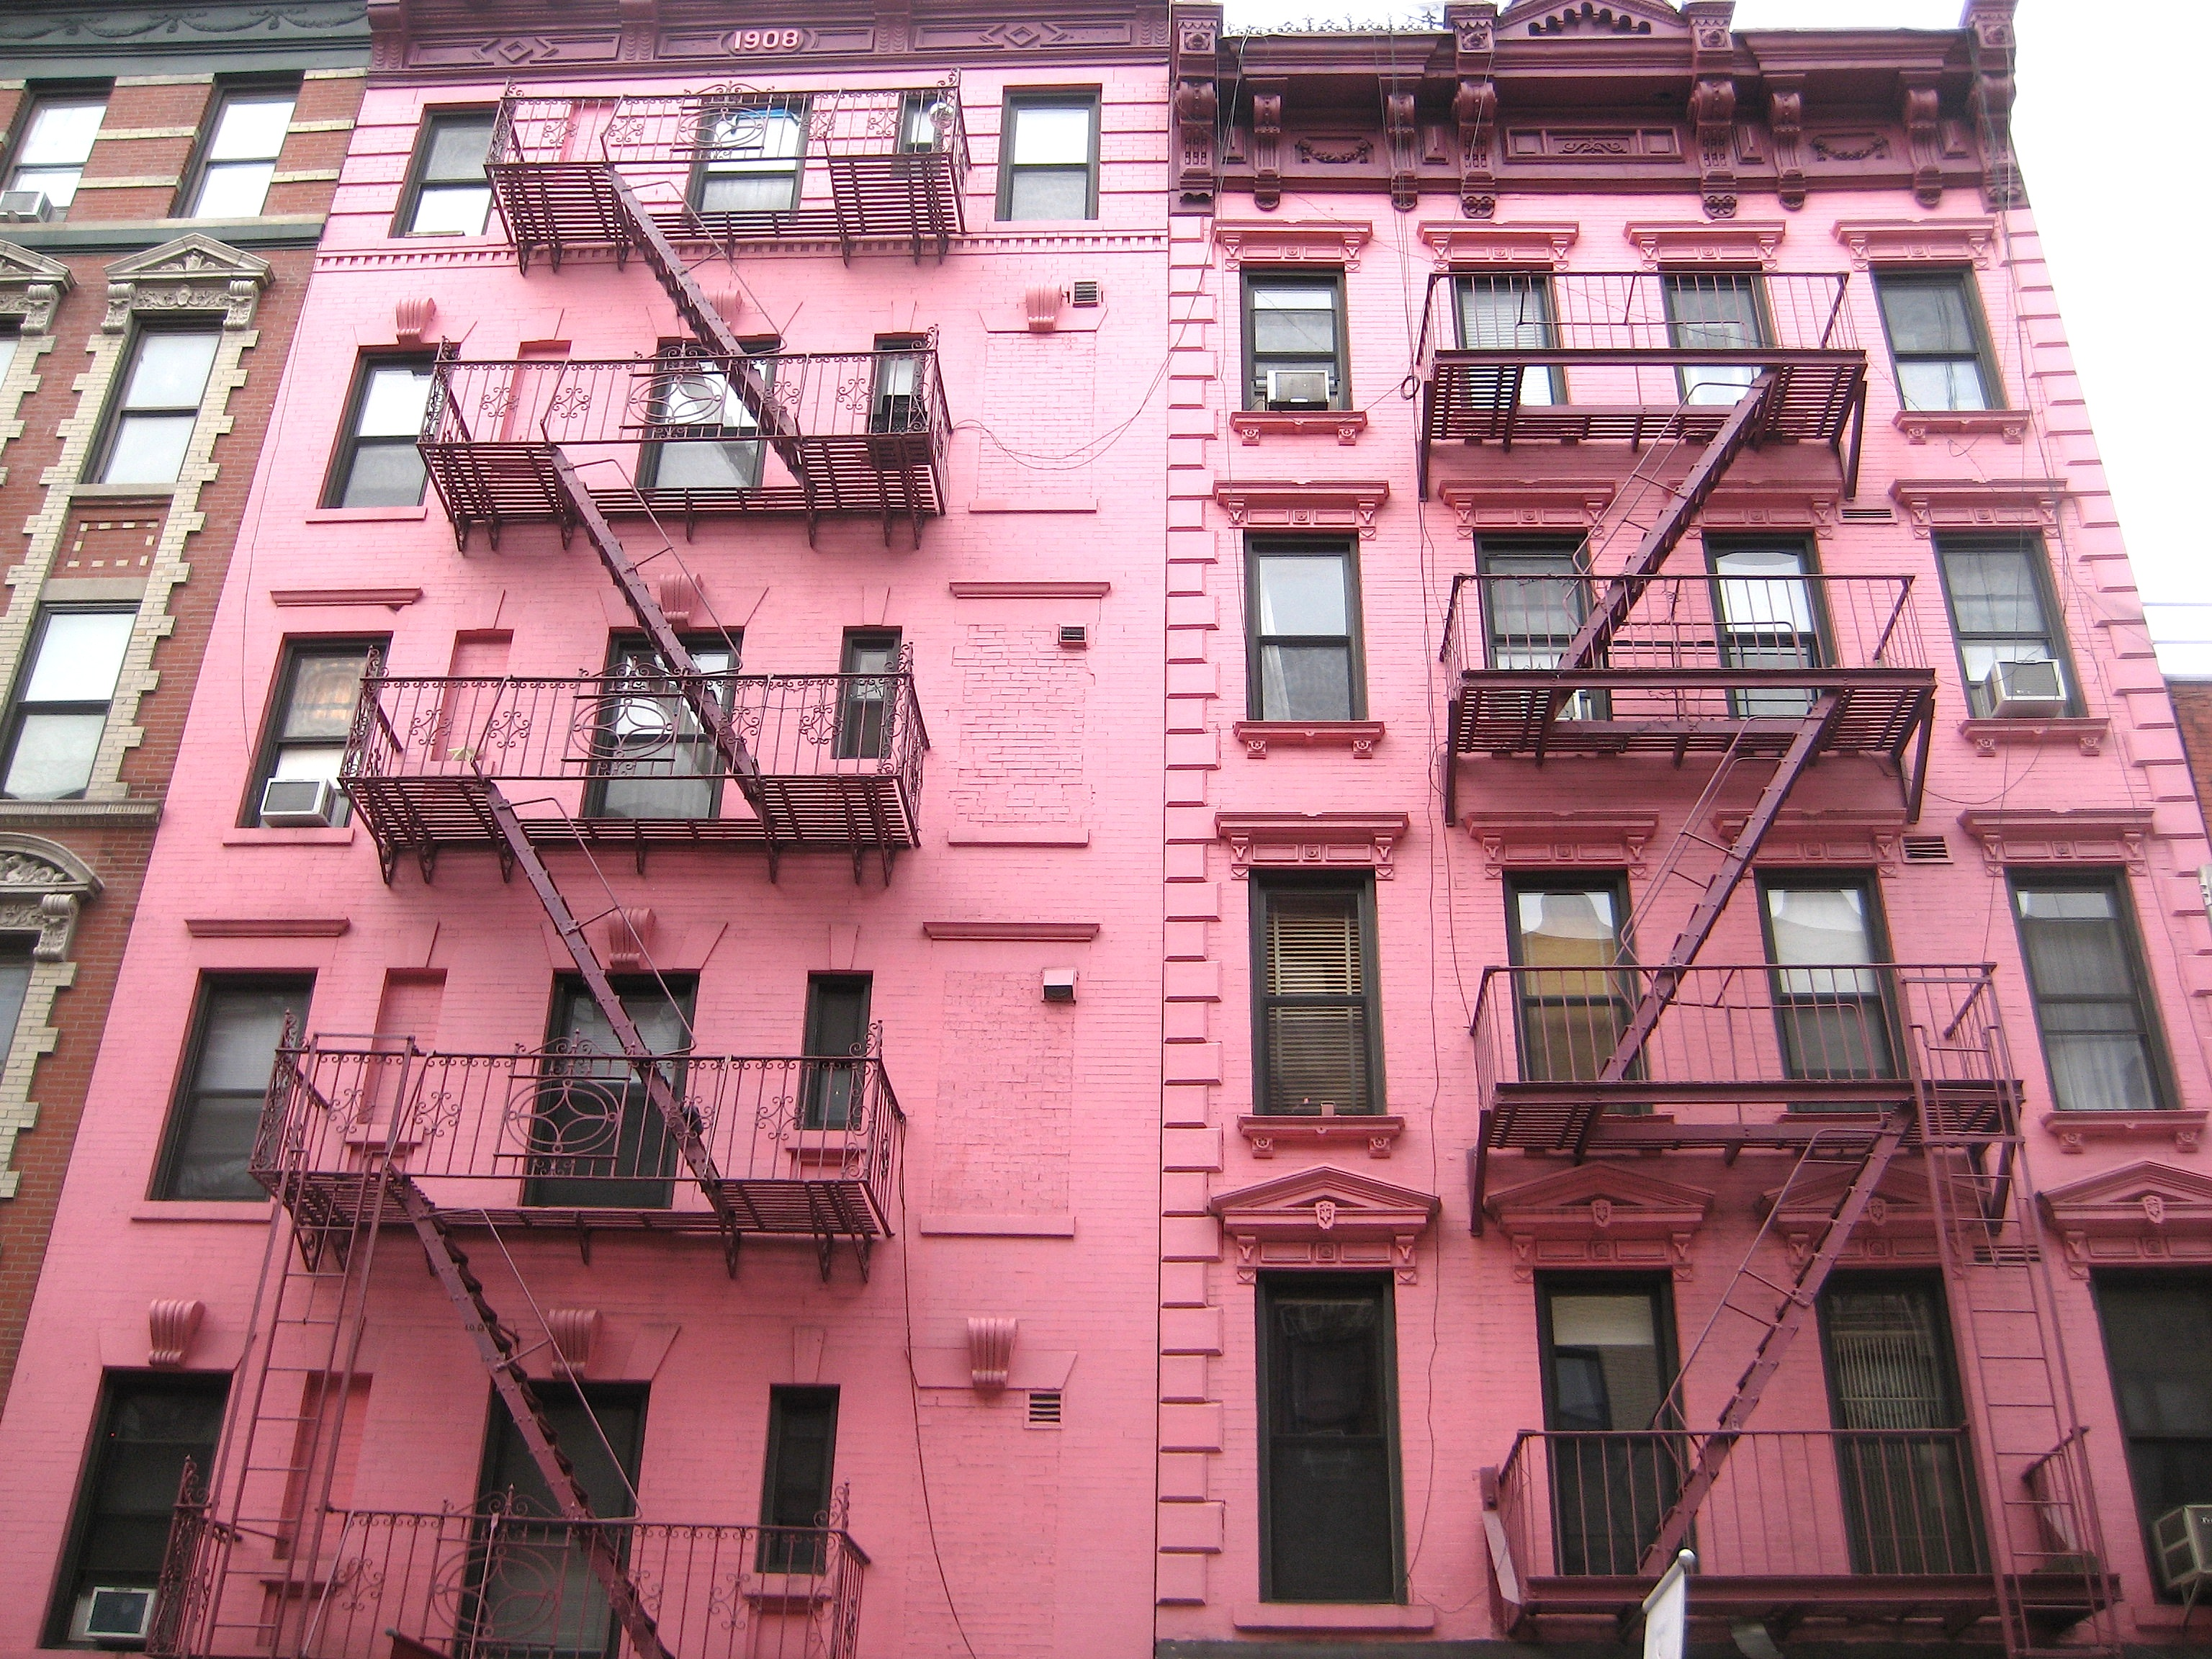 The pinkest houses in New York City | Ephemeral New York